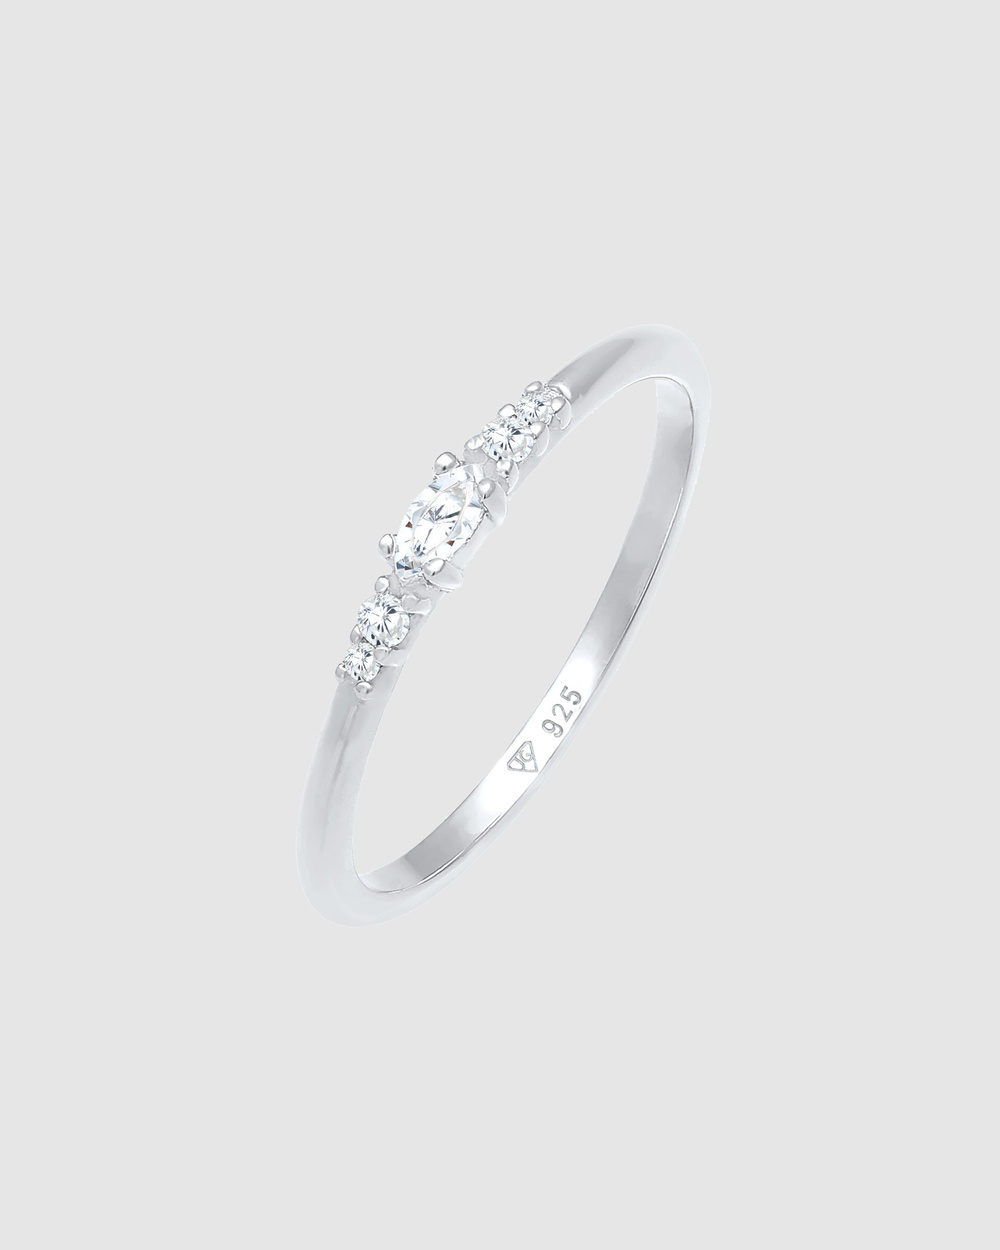 Elli Jewelry Ring Marquise Elegant Engagement with Zirconia Crystals in 925 Sterling Silver Jewellery Silver